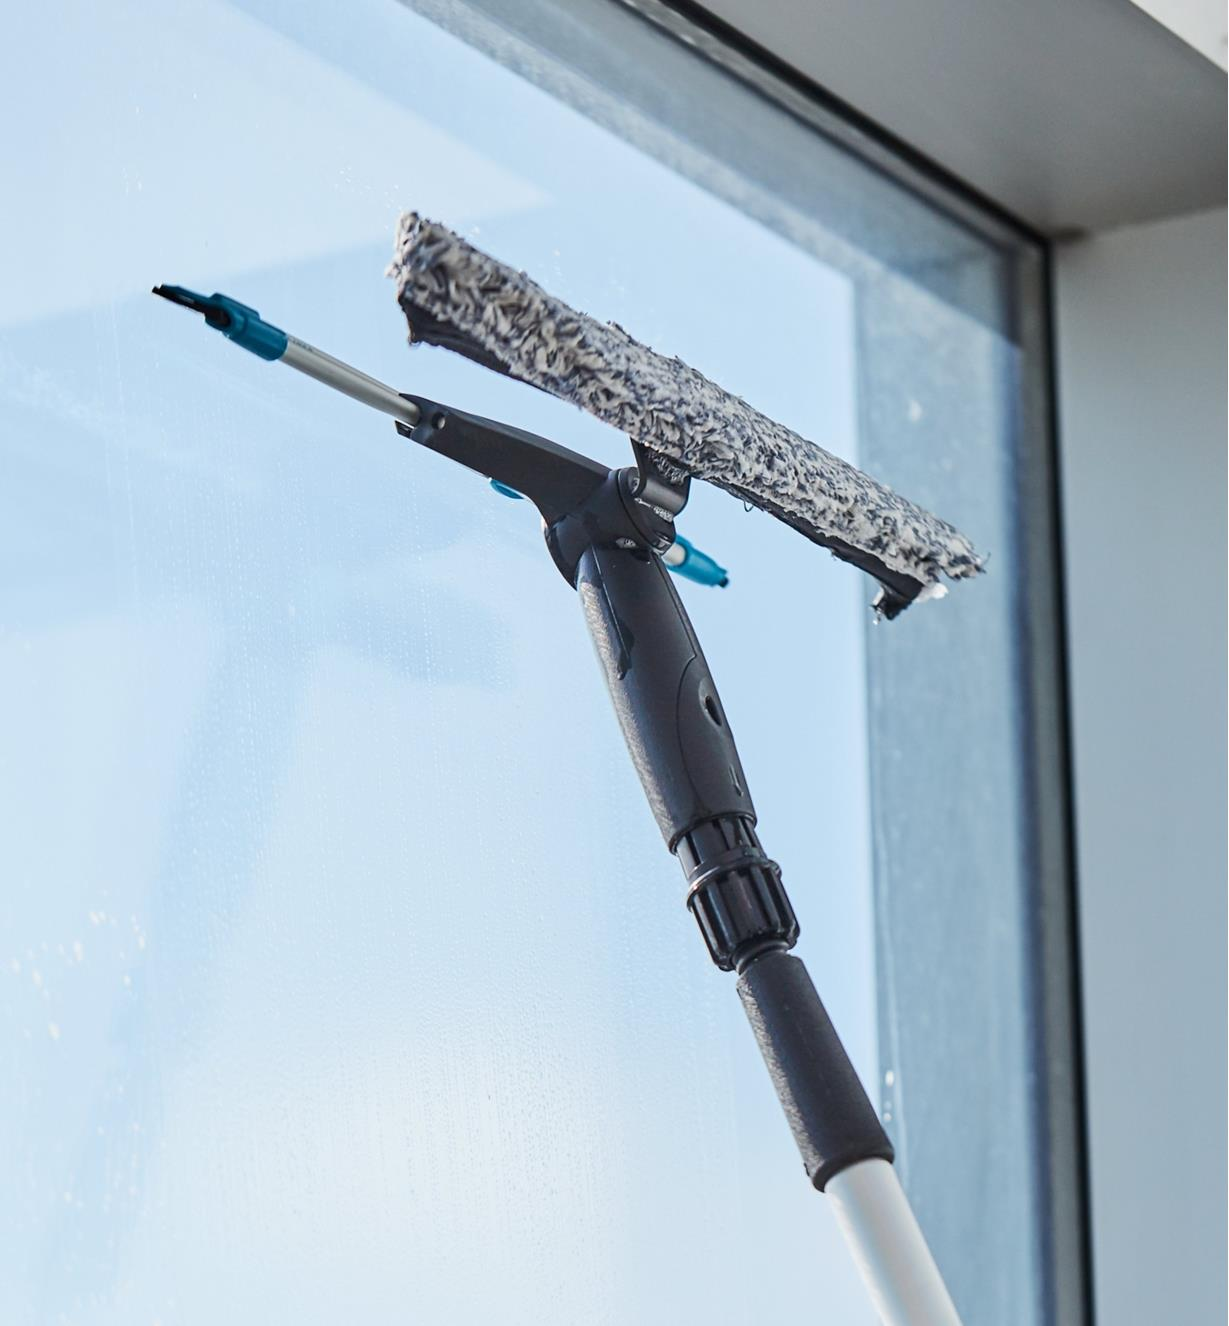 Using the rubber squeegee of the dual-head window-washing set to wipe a window dry